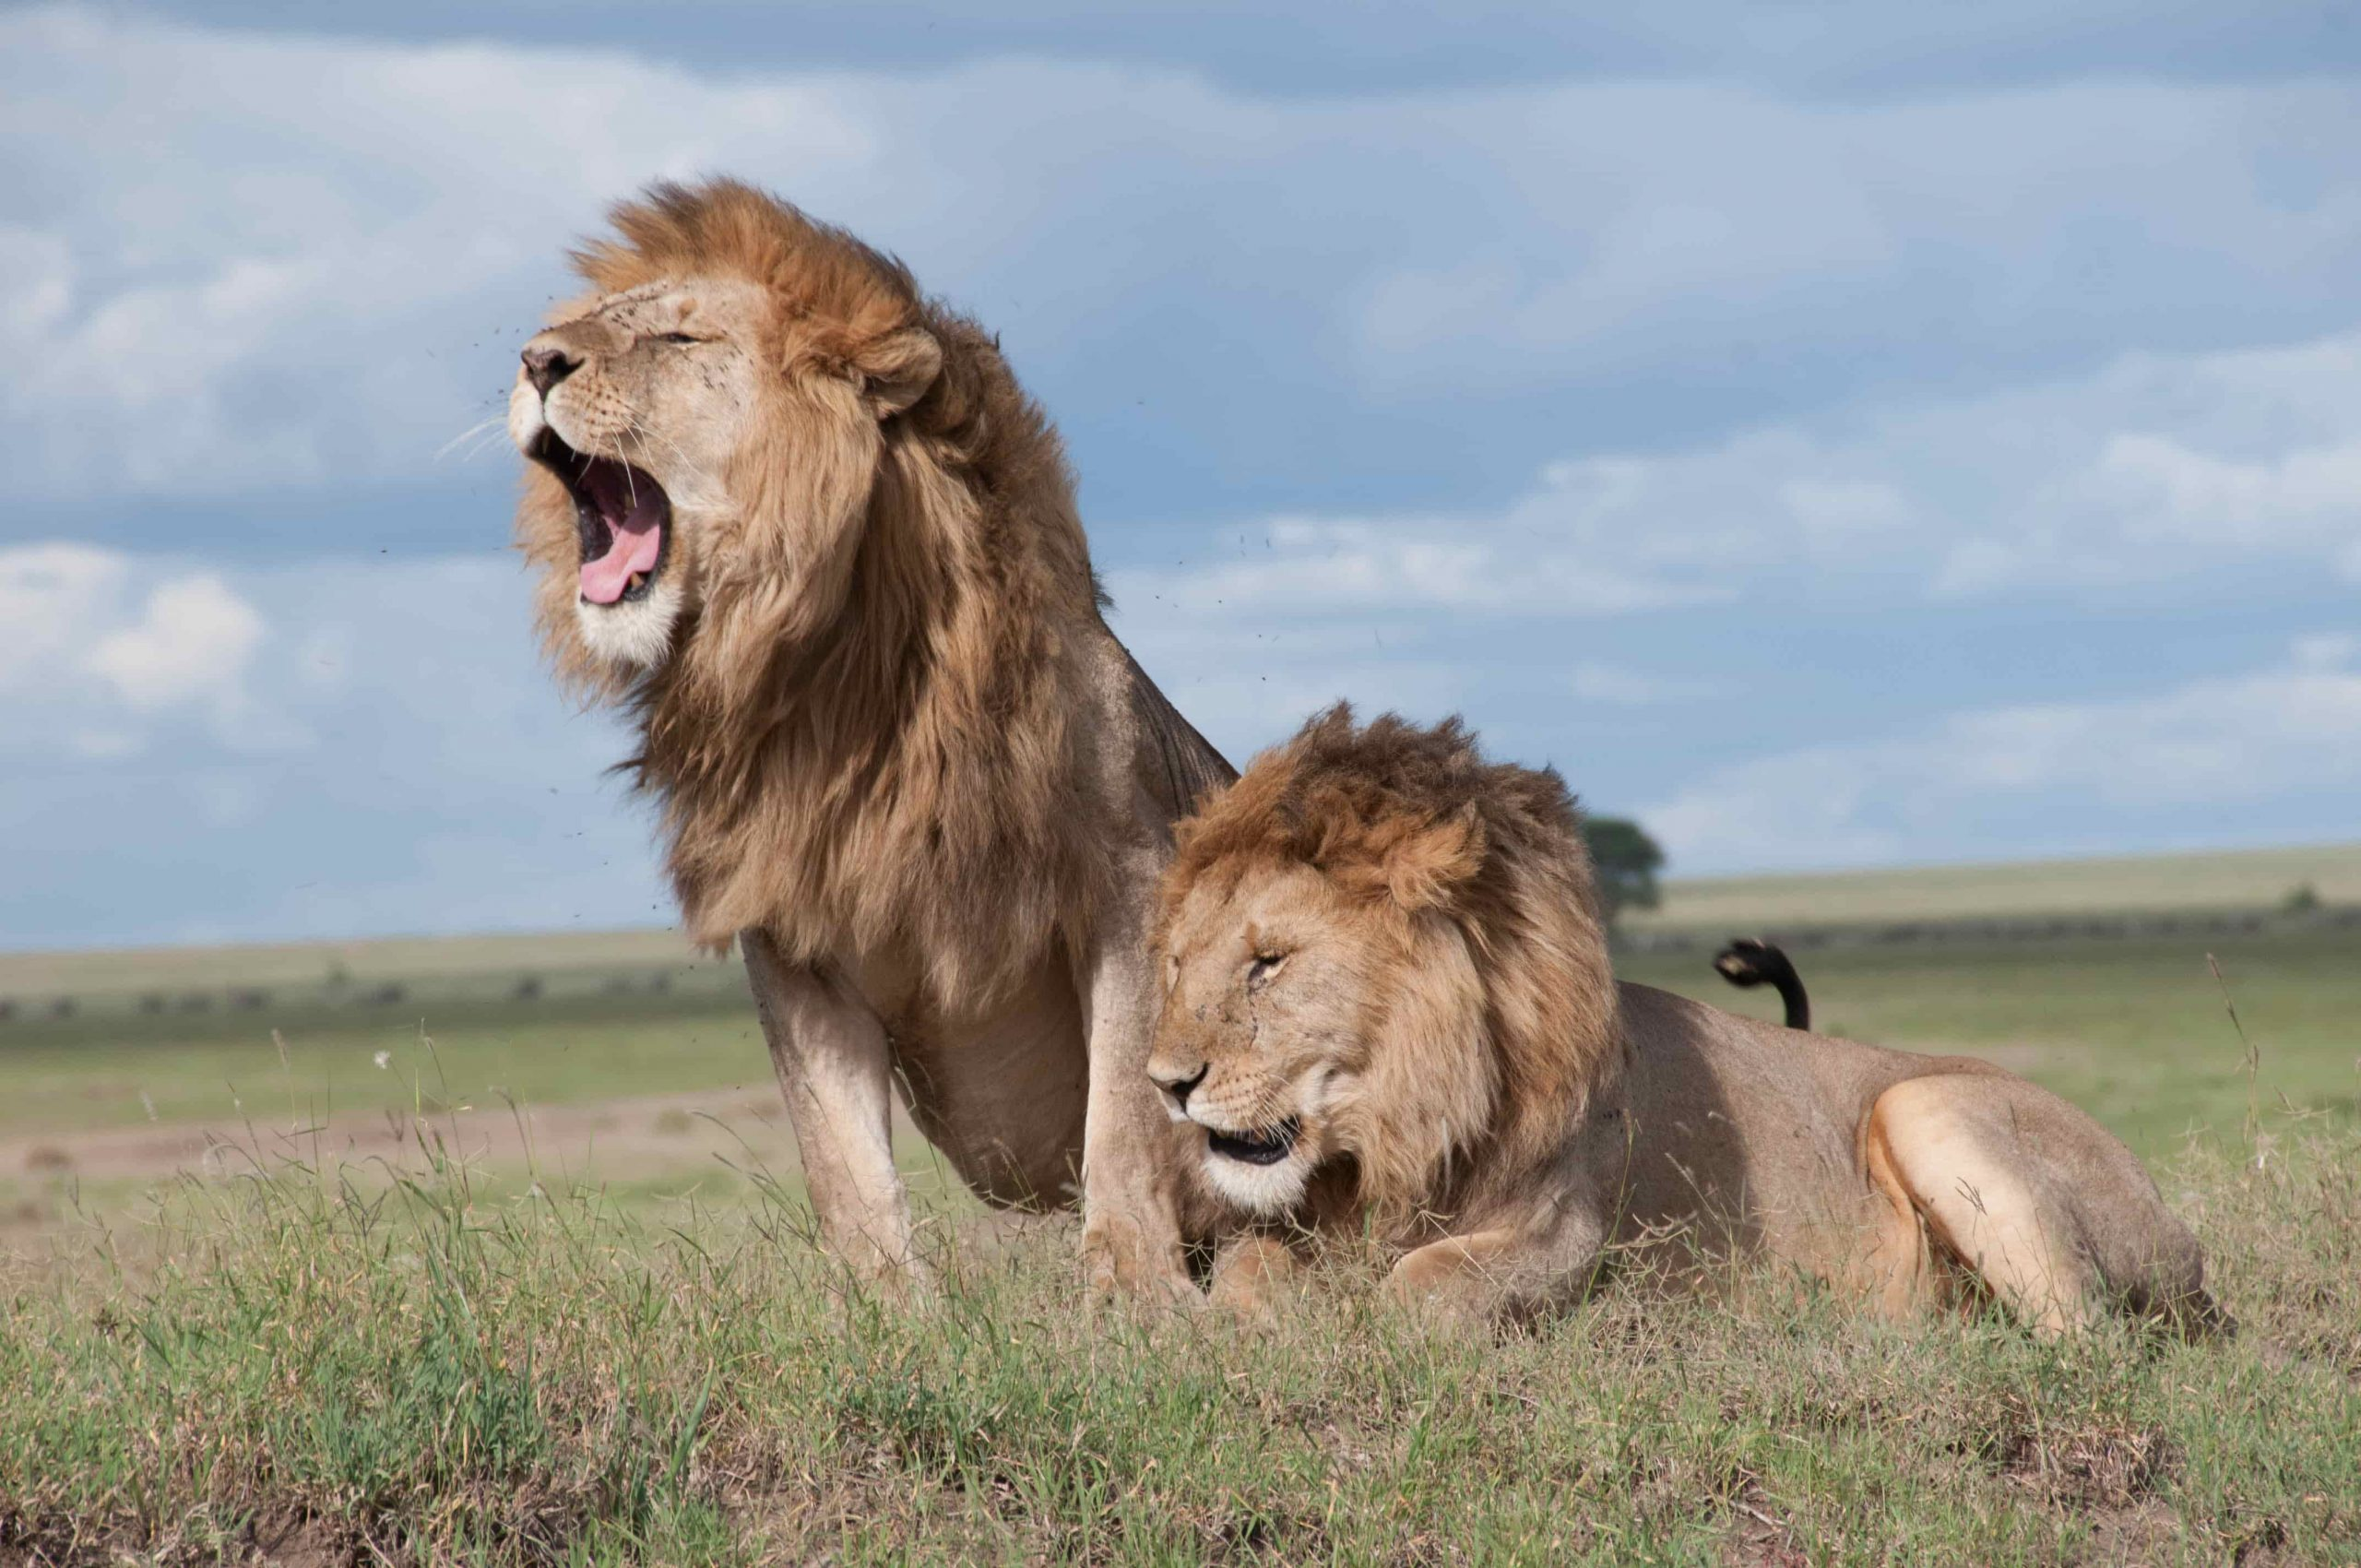 Some Interesting Facts About Lions